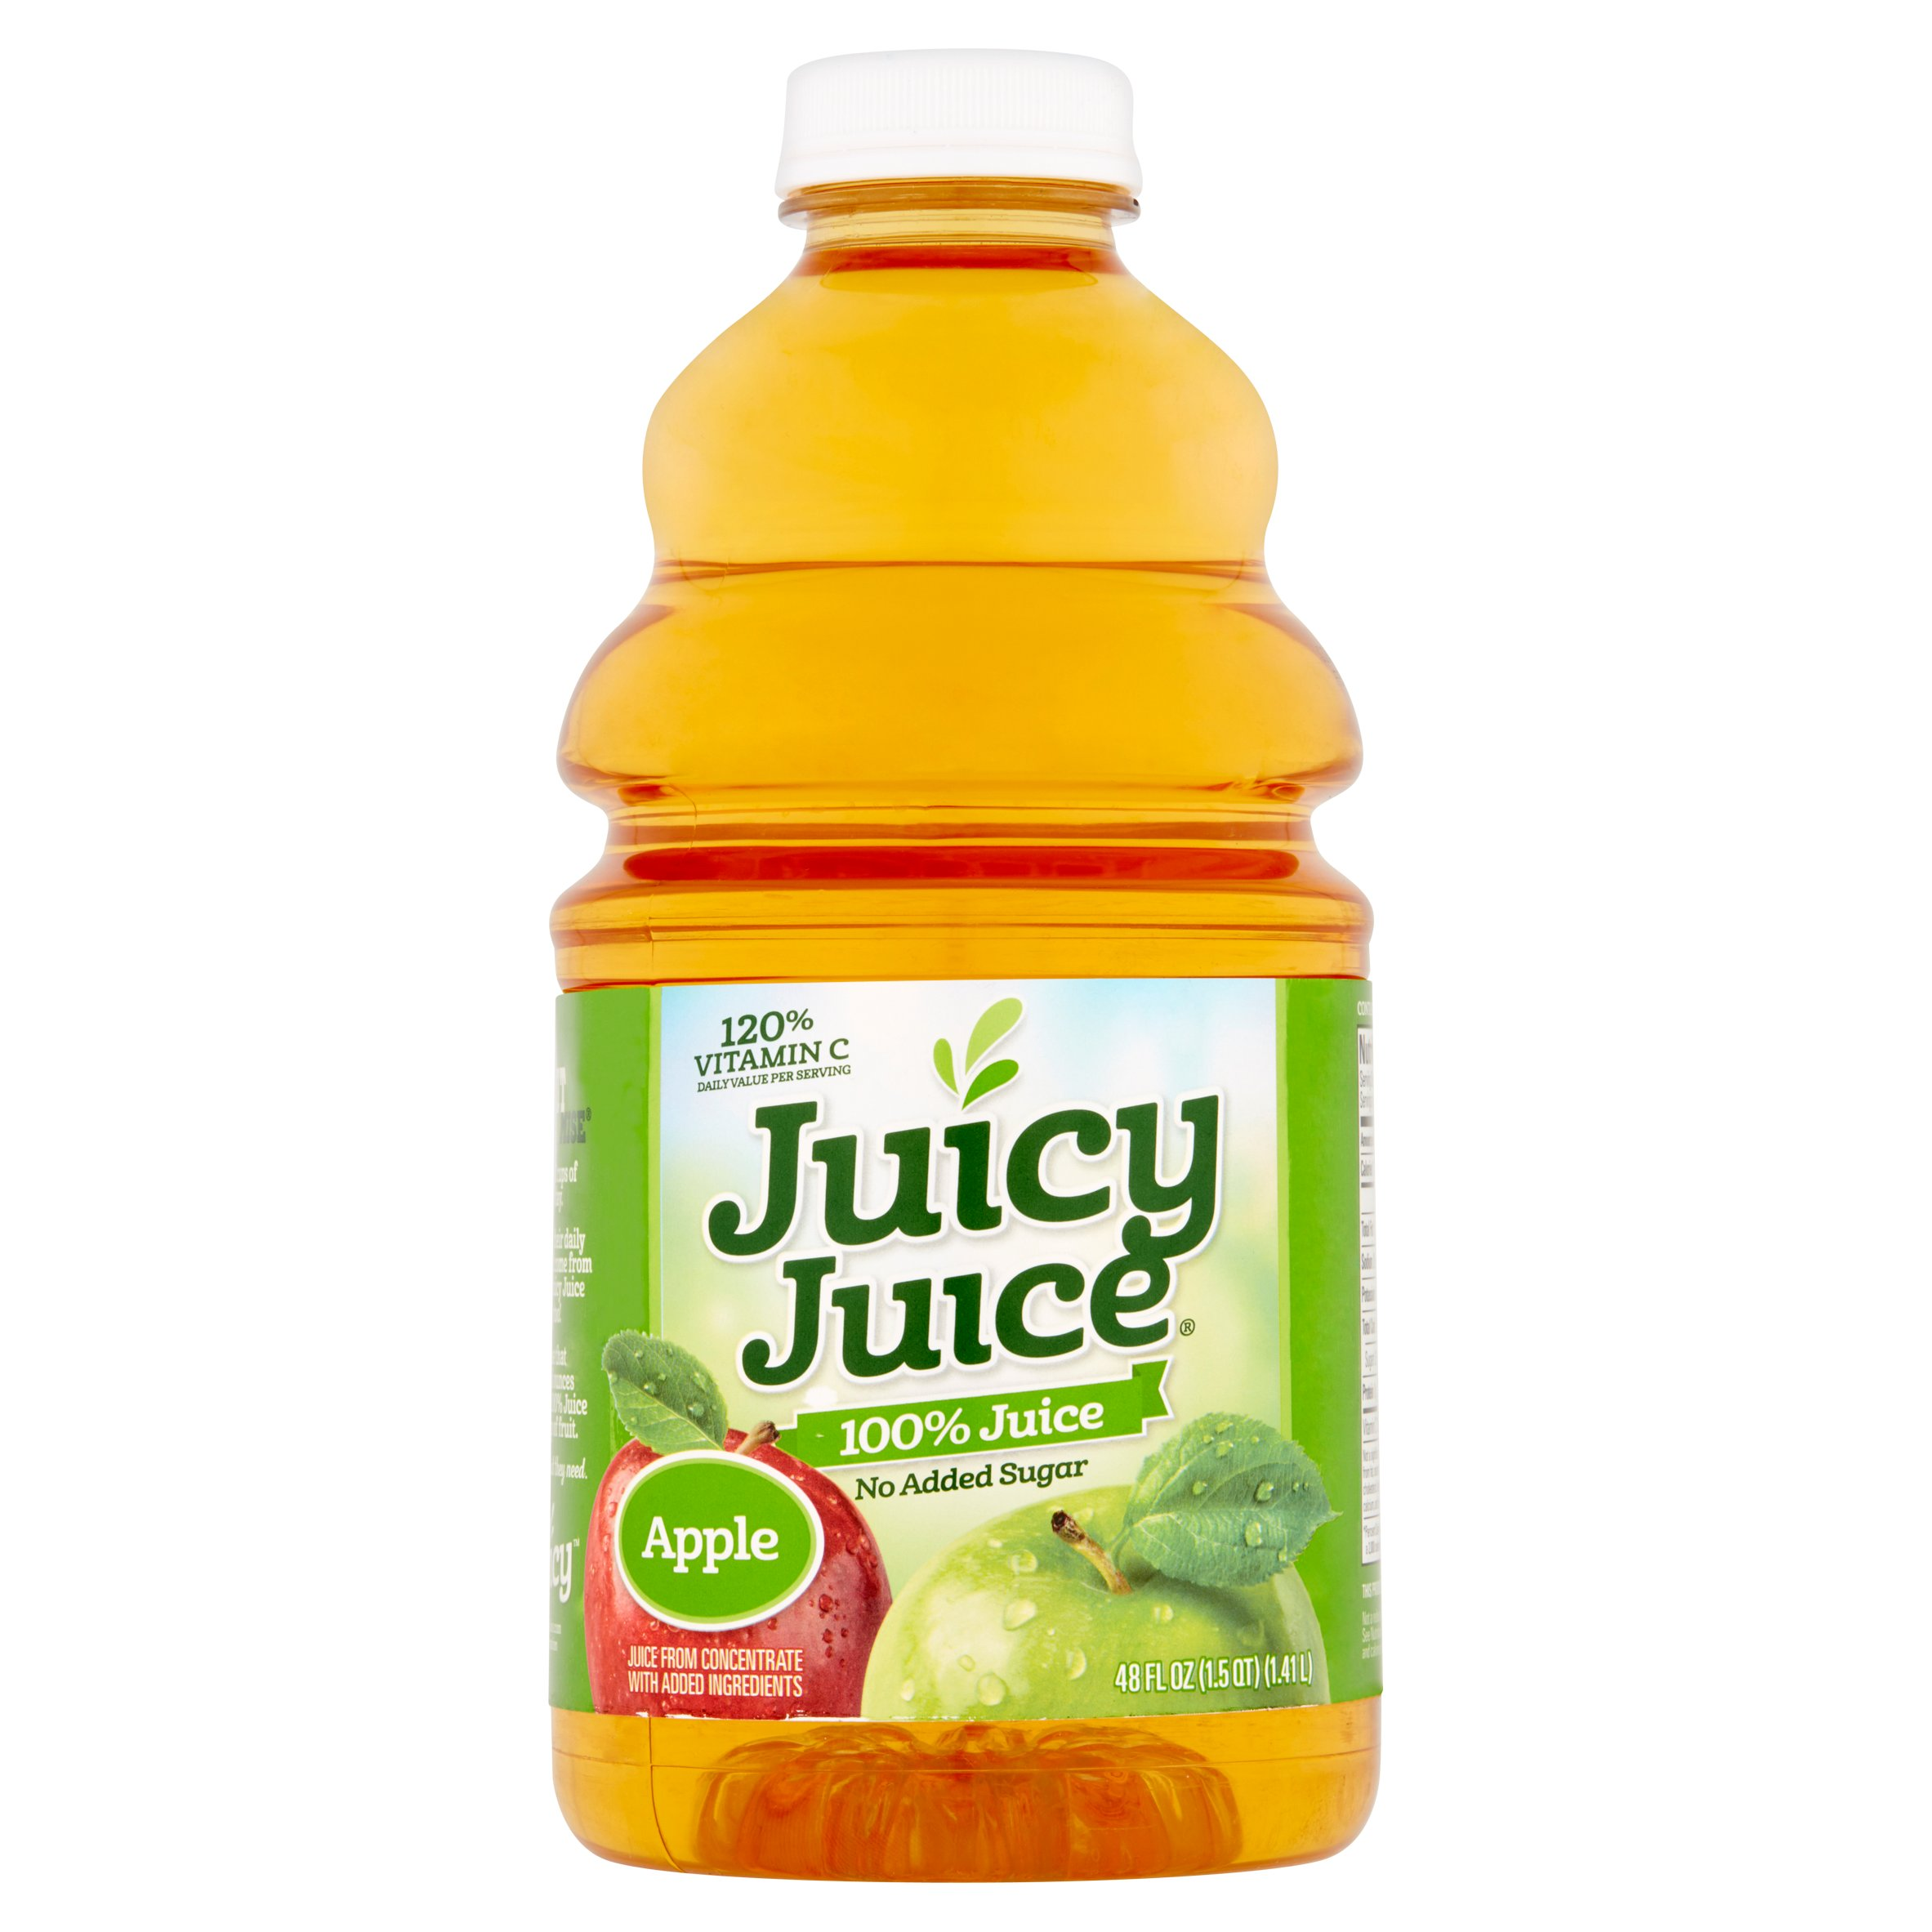 Juicy Juice Apple 100% Juice, 48 fl oz